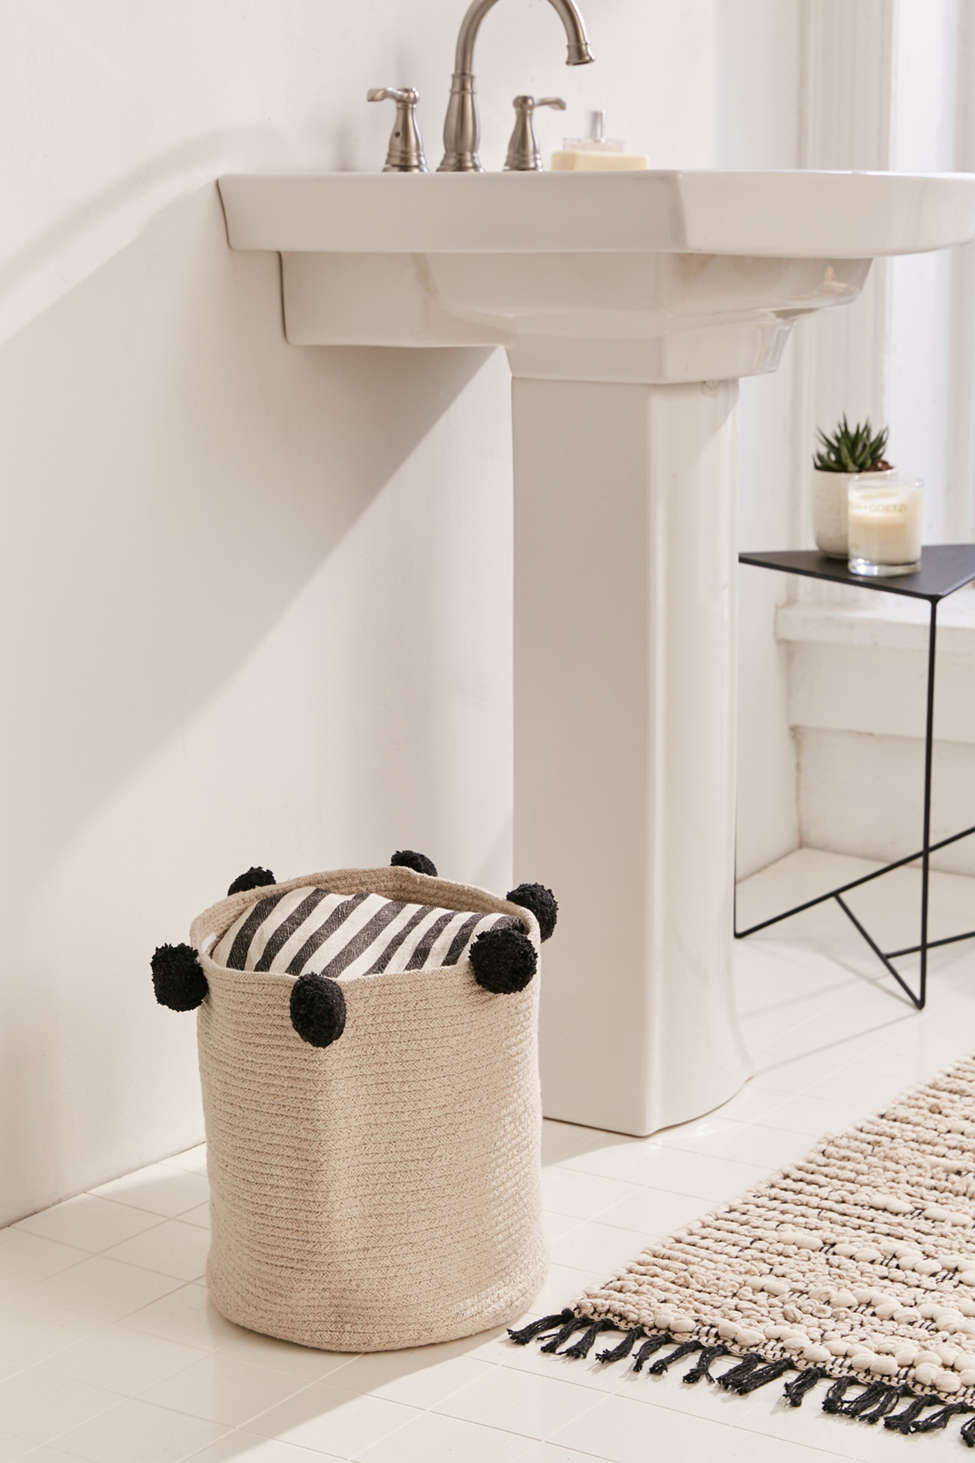 Slide View: 1: Lorena Canals Bubbly Pom Laundry Basket